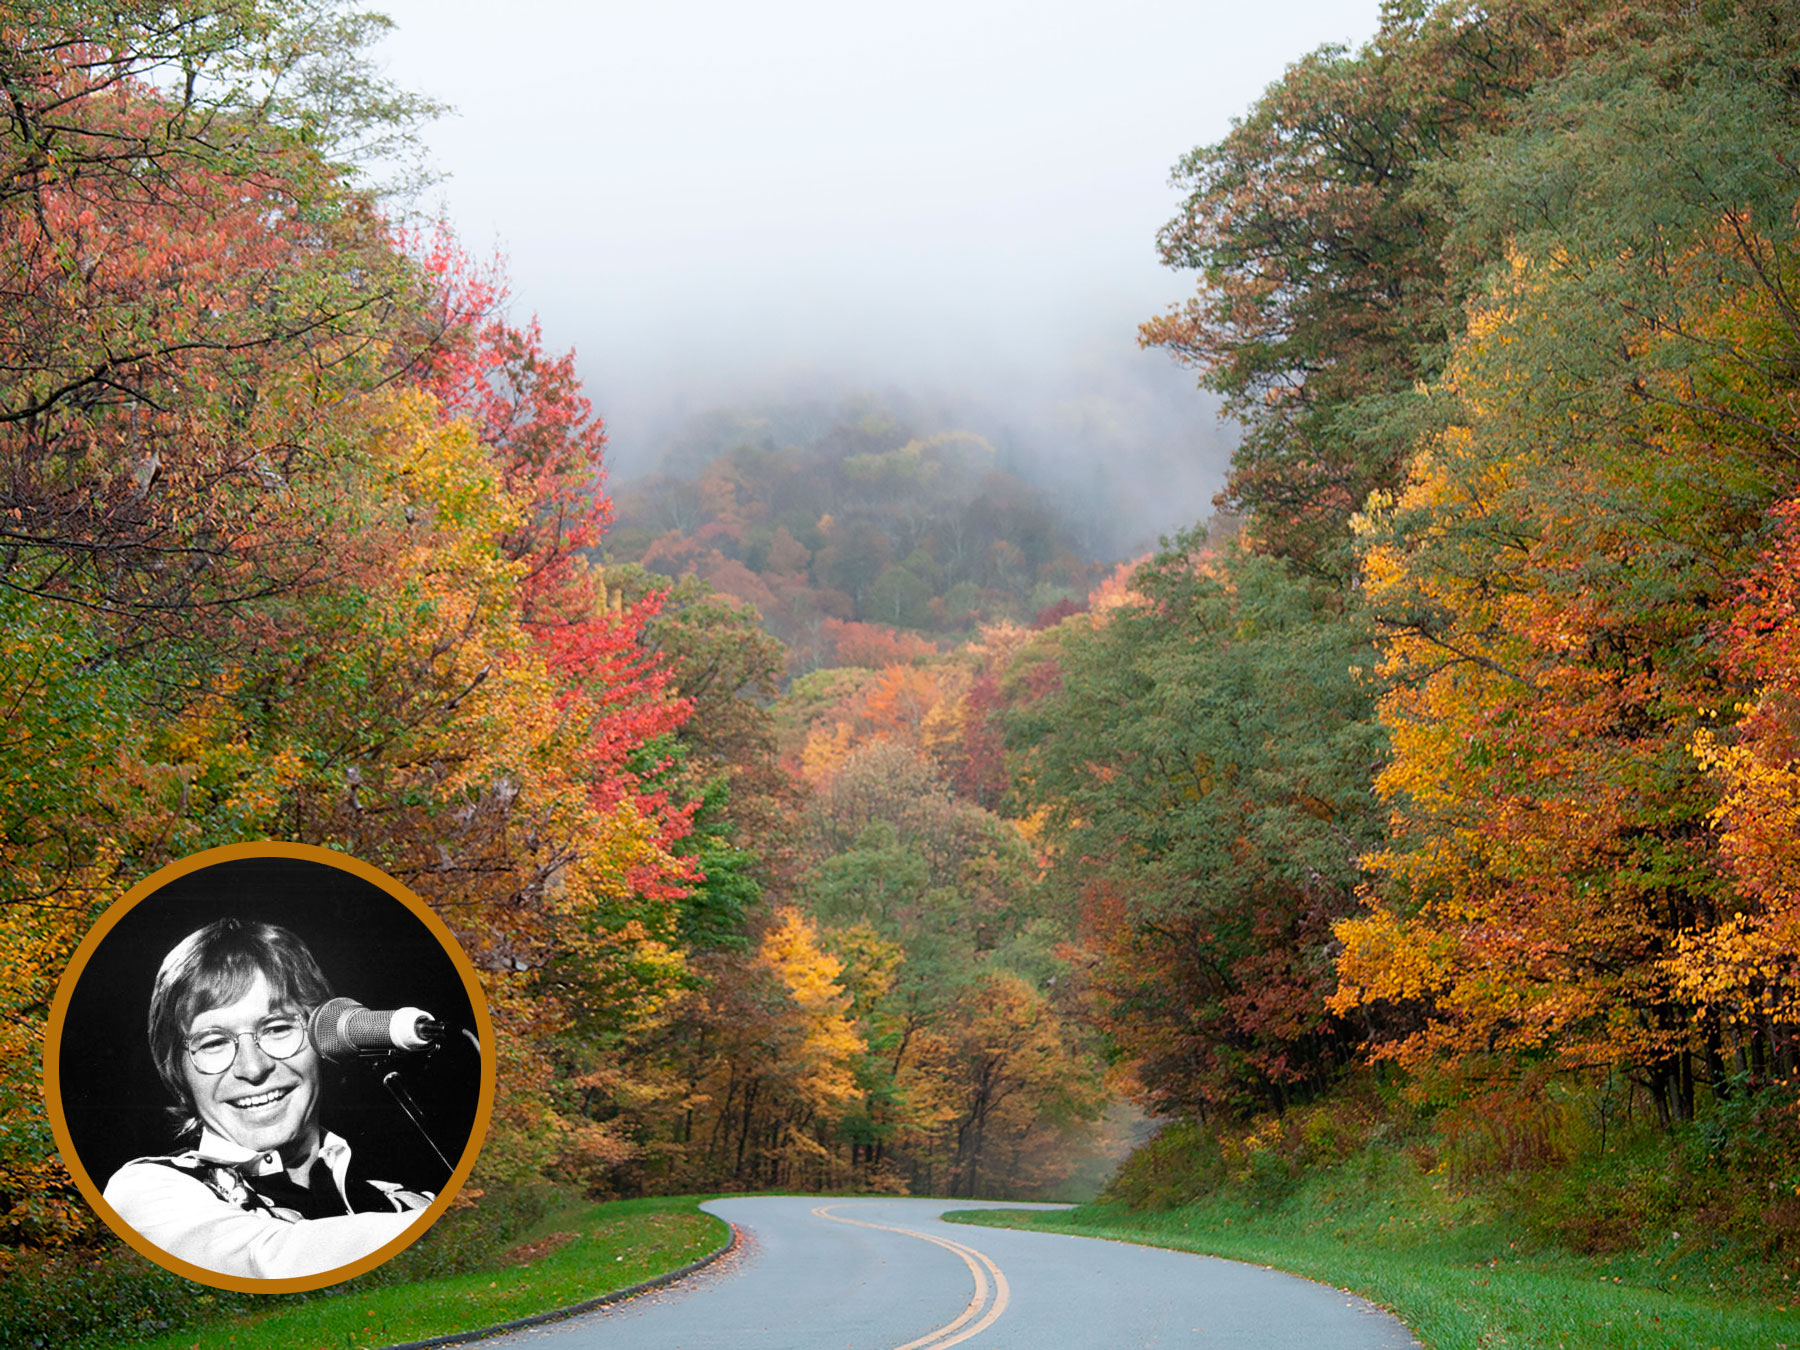 """Western or West Virginia? John Denver's """"Take Me Home, Country Roads"""" Sparks a Lively Debate"""